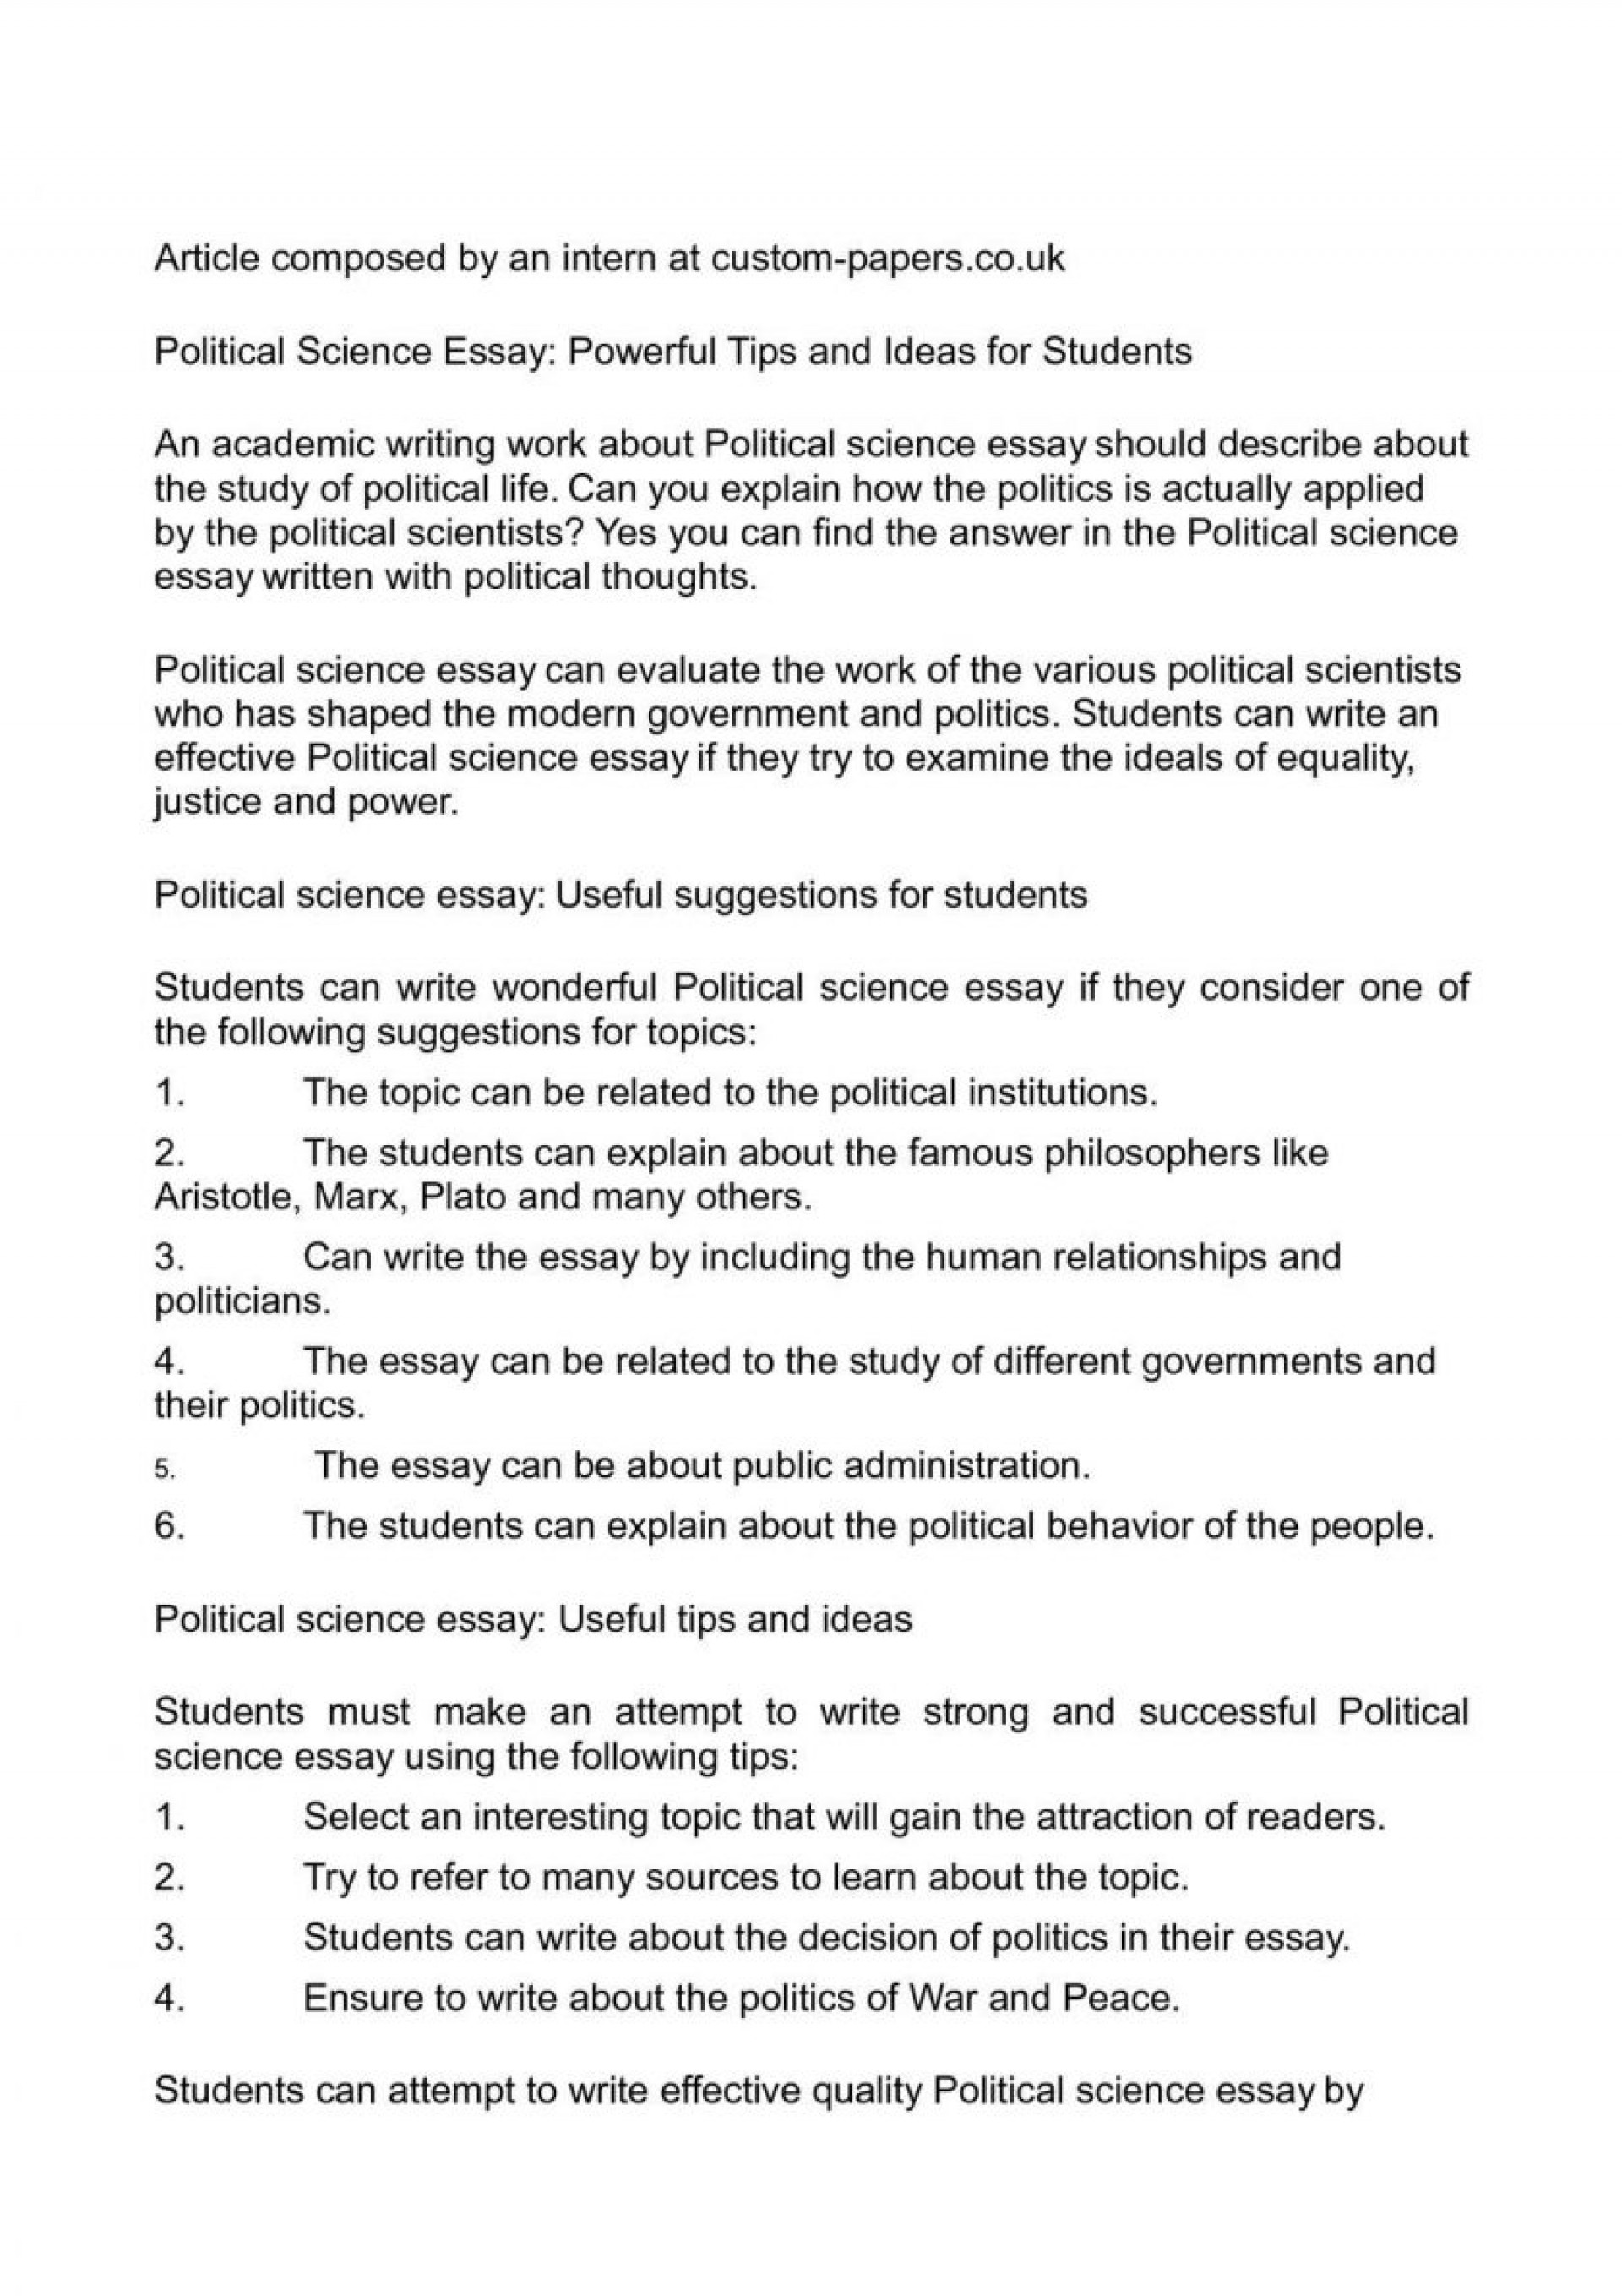 011 Essay Macbeth Ideas Science Argumentative Topics Good Photo Easy To Write Abo About Research Paper Personal Descriptive Persuasive College Synthesis Informative Narrative 840x1189 Interesting Topic Breathtaking For Hot Medical Papers In Education The Philippines Sample 1920